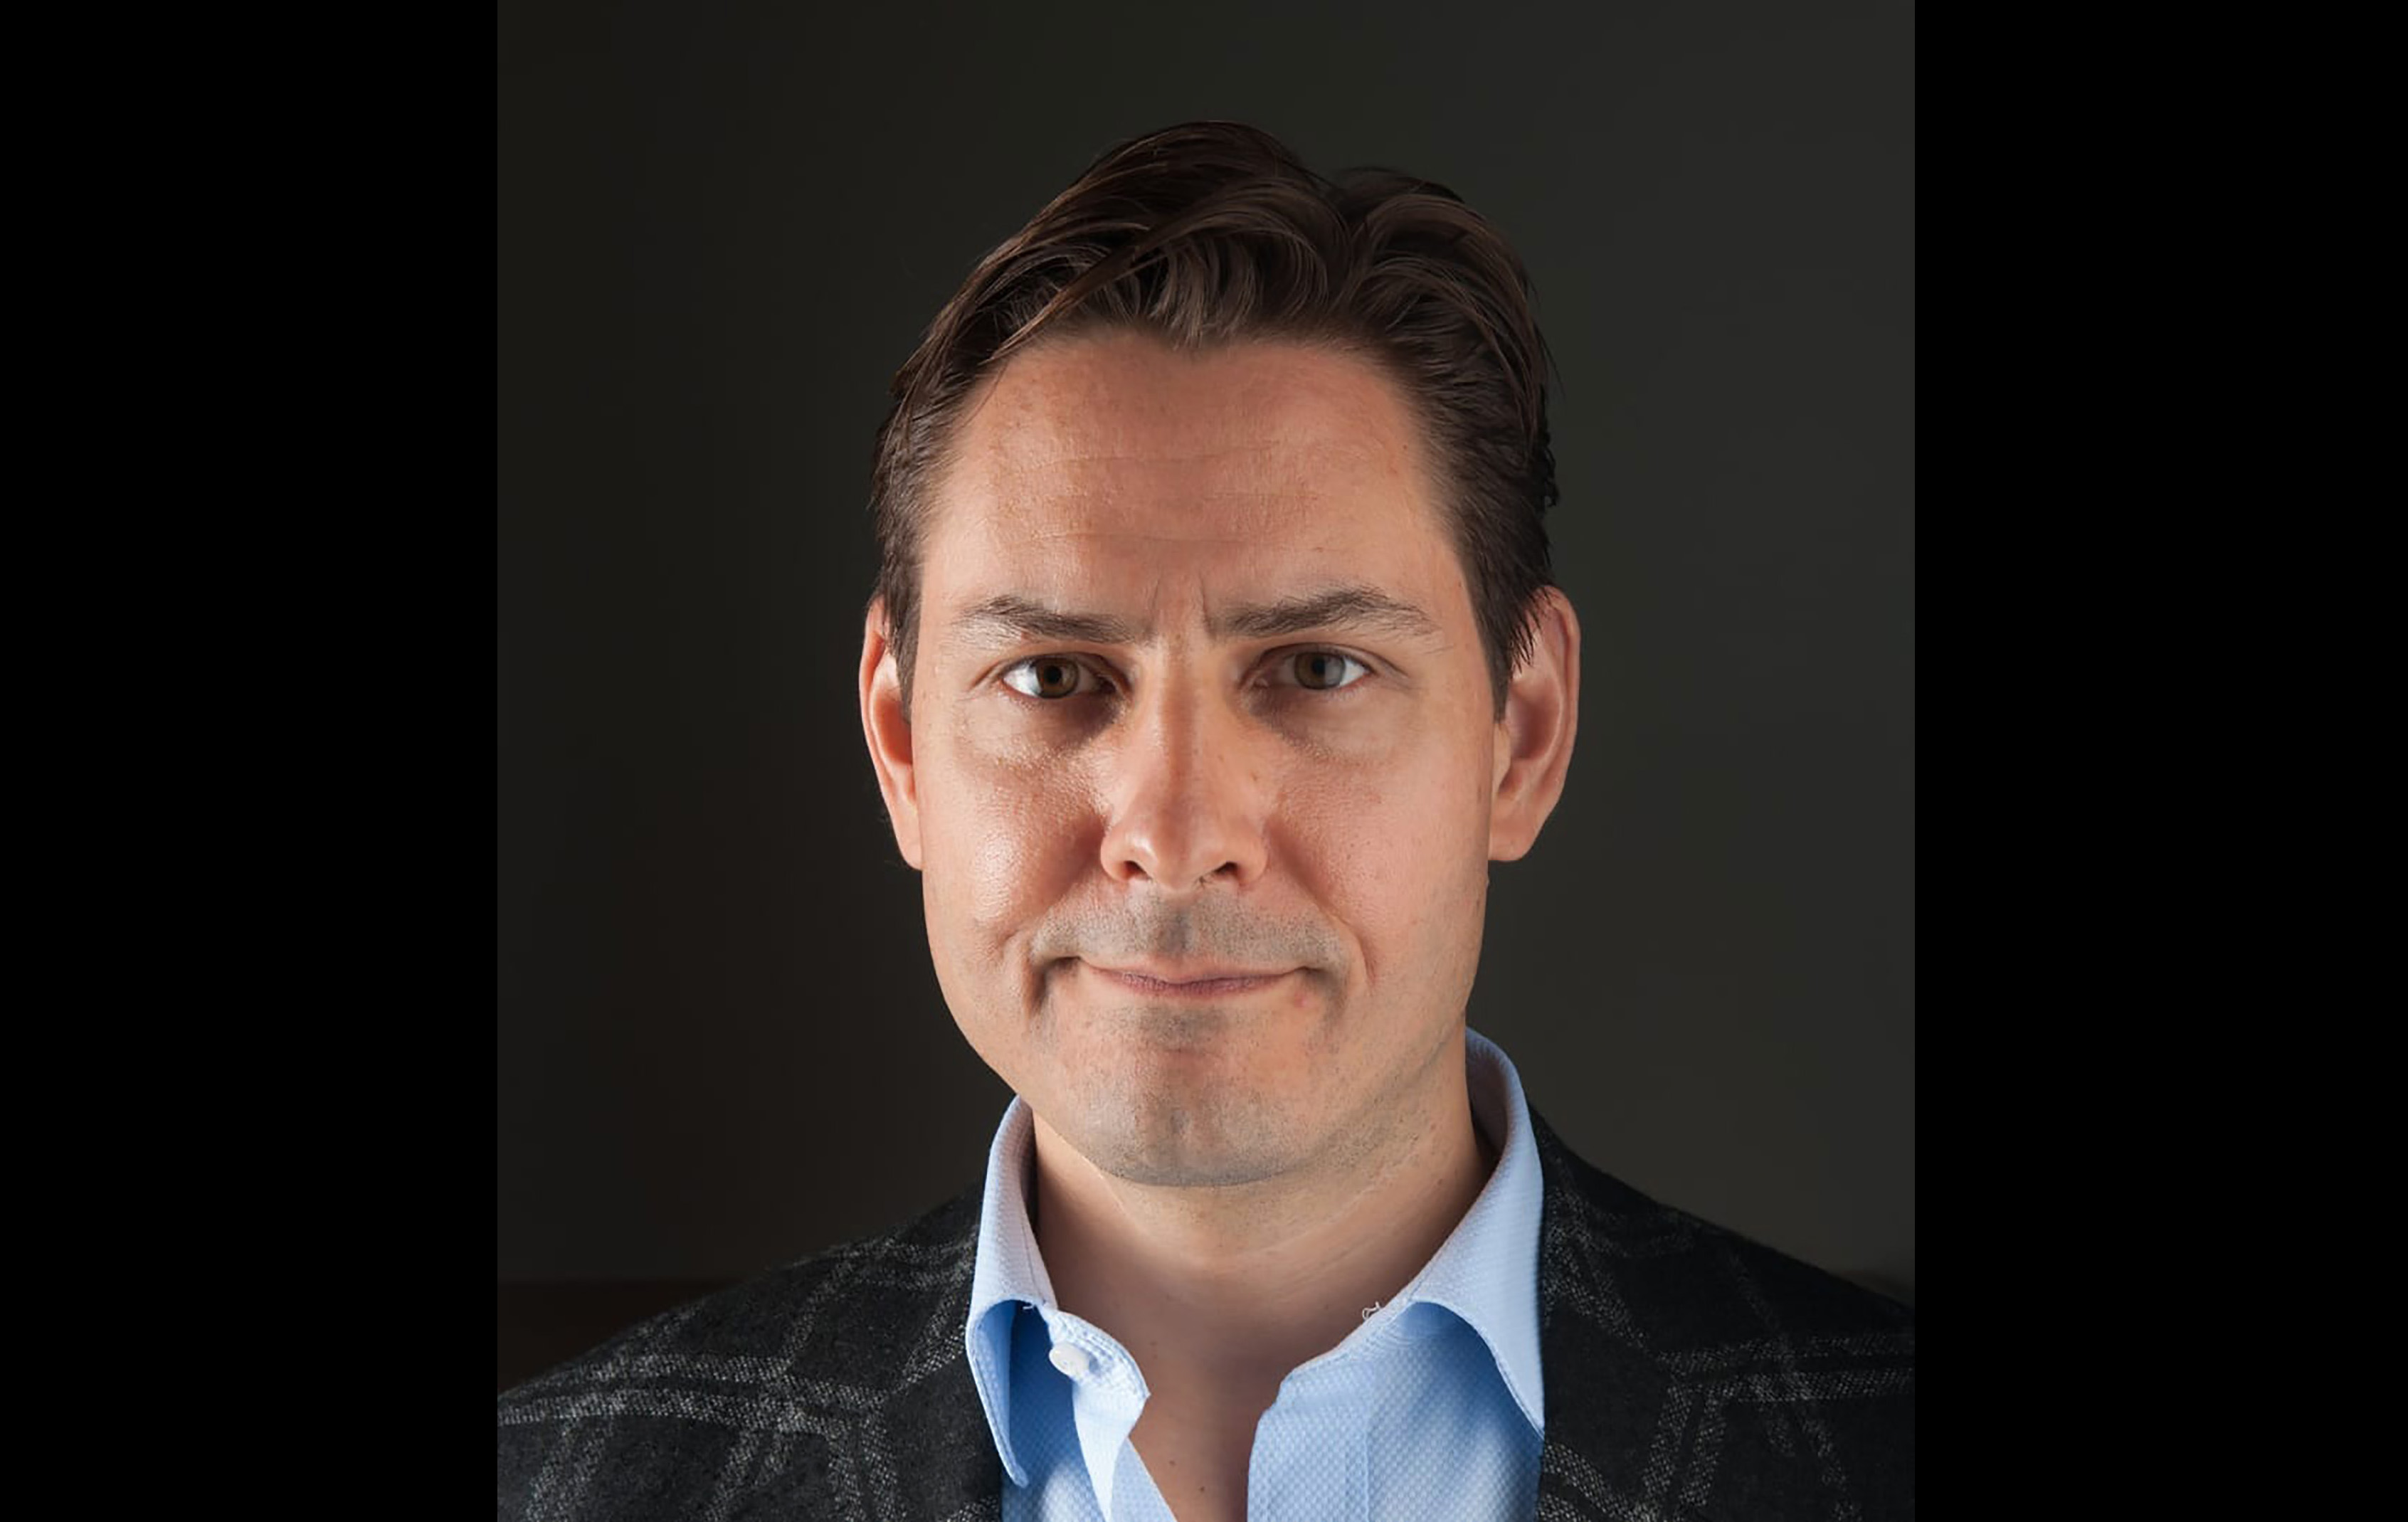 被中共抓捕的康明凱(Michael Kovrig)。(Julie DAVID DE LOSSY/CRISIGROUP/AFP)